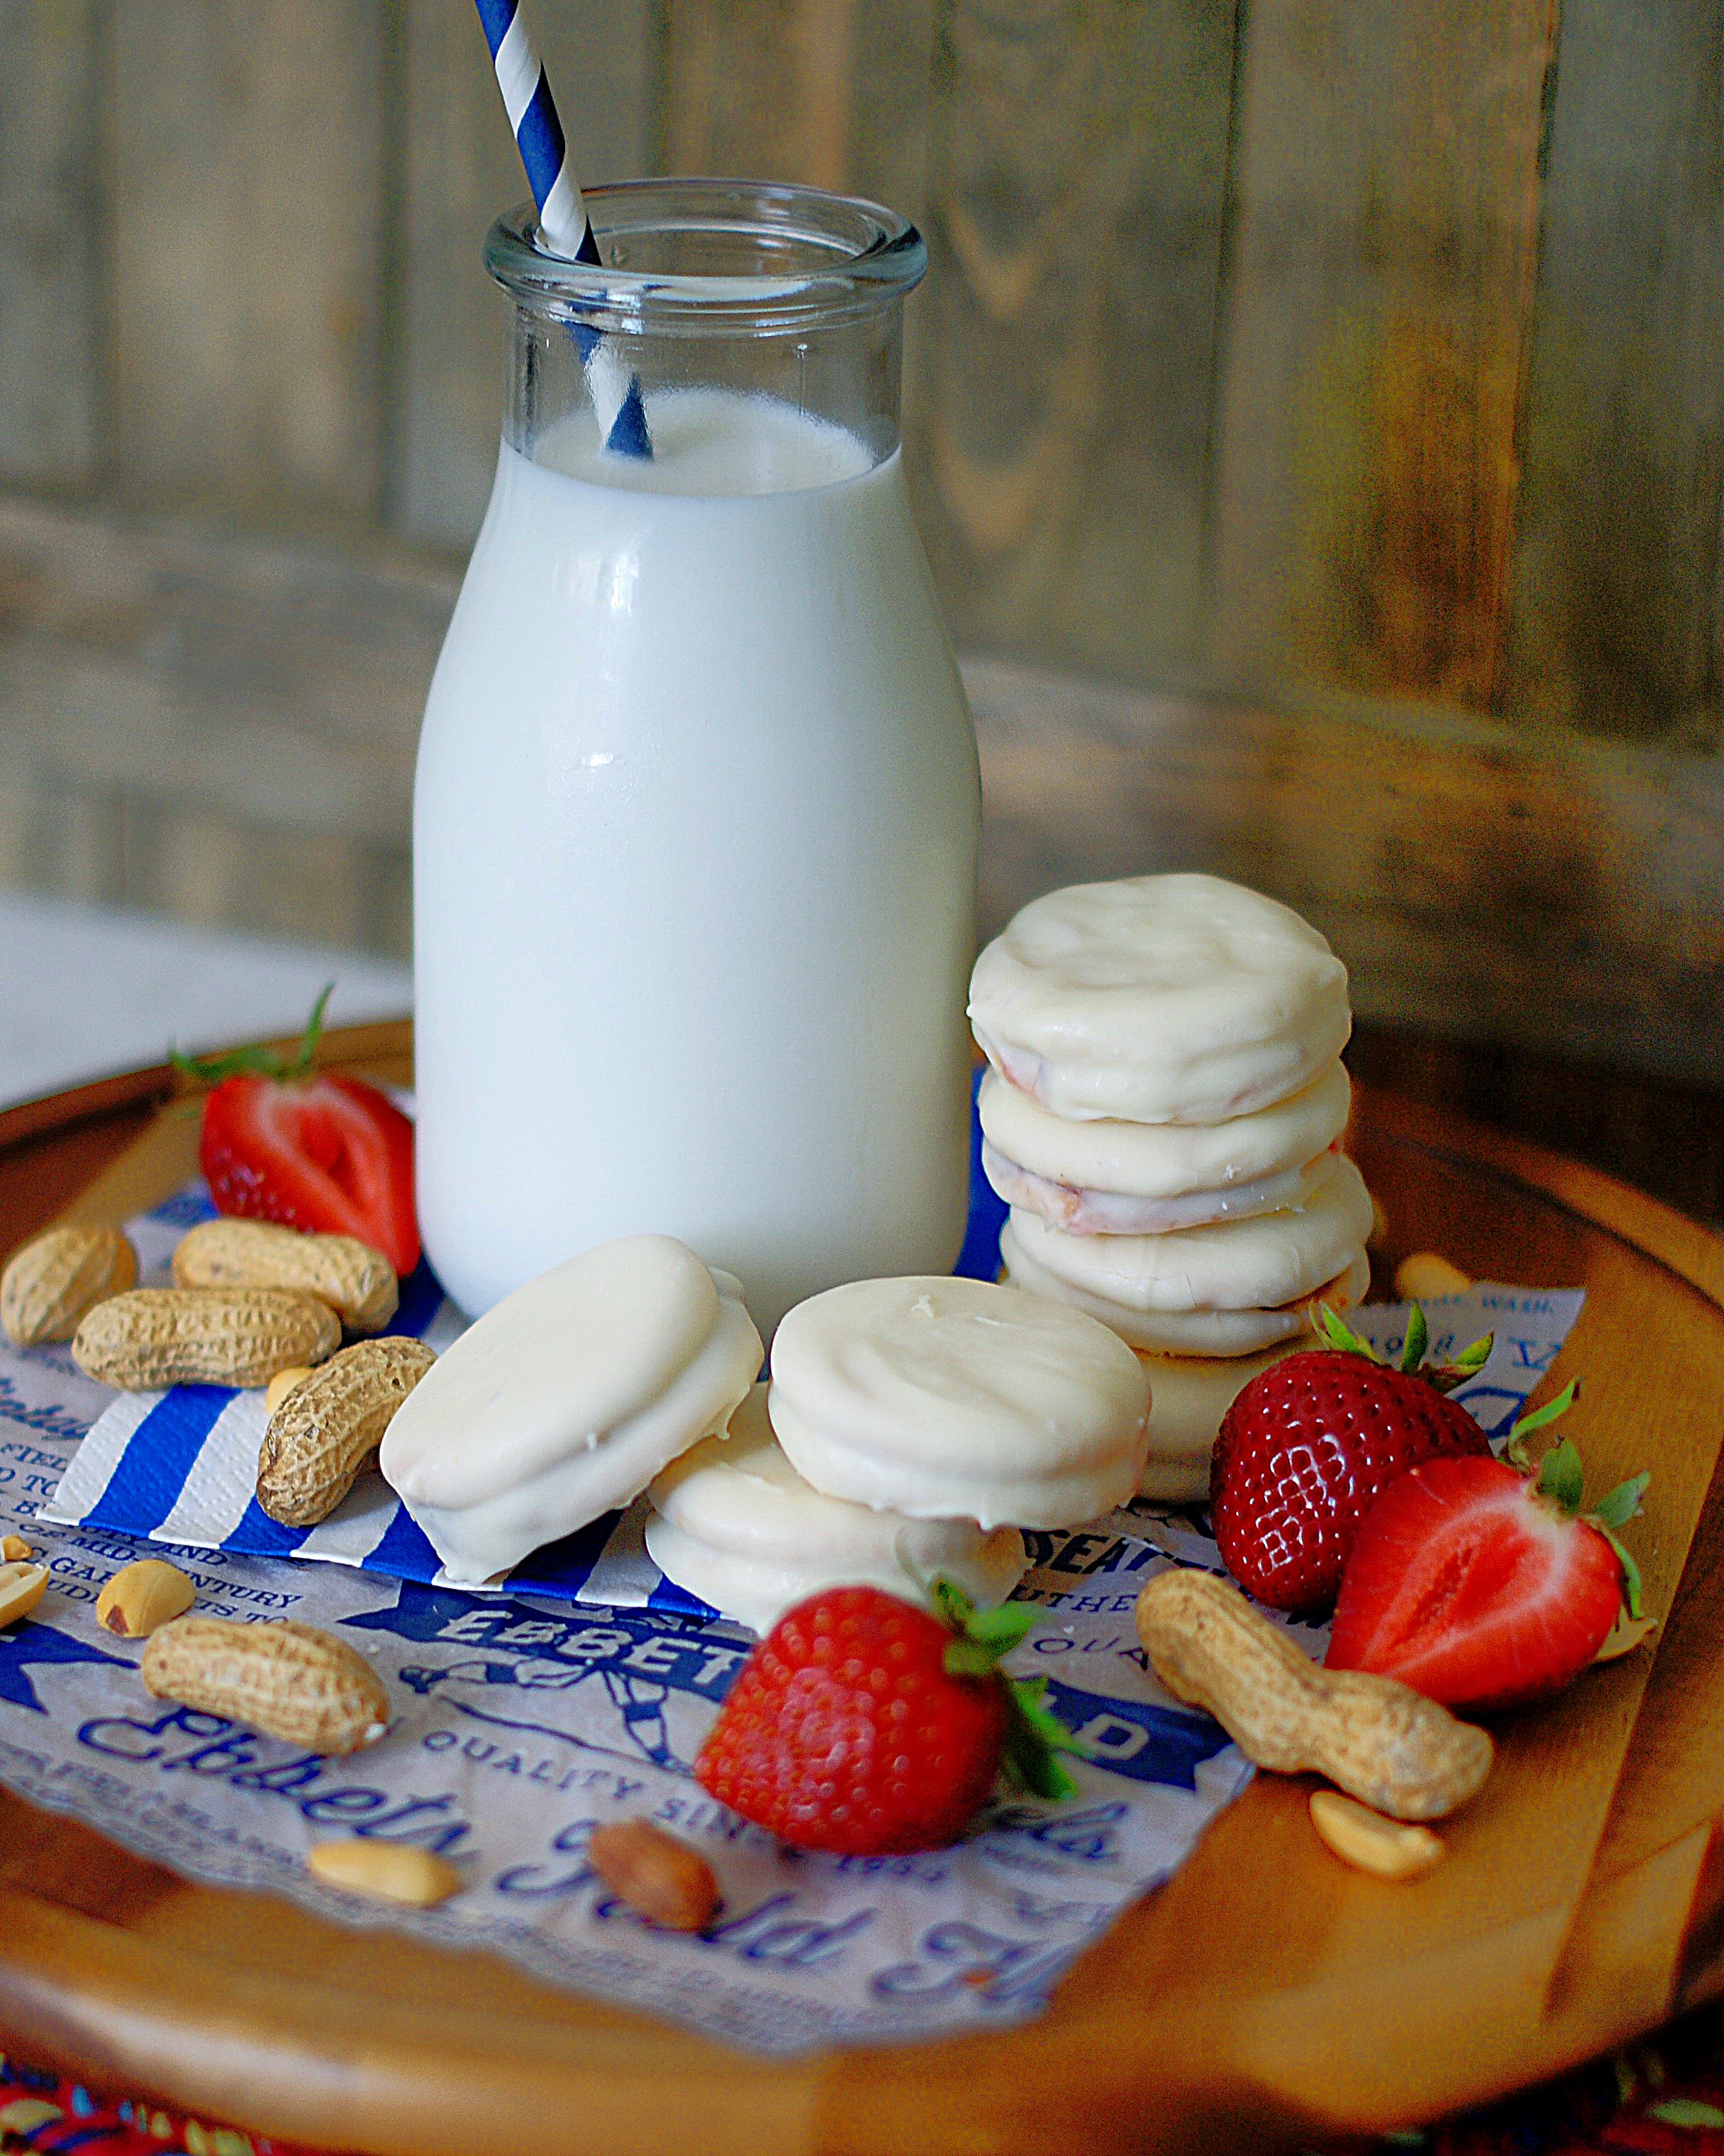 White chocolate dipped peanut butter & jelly crackers with milk and strawberries.